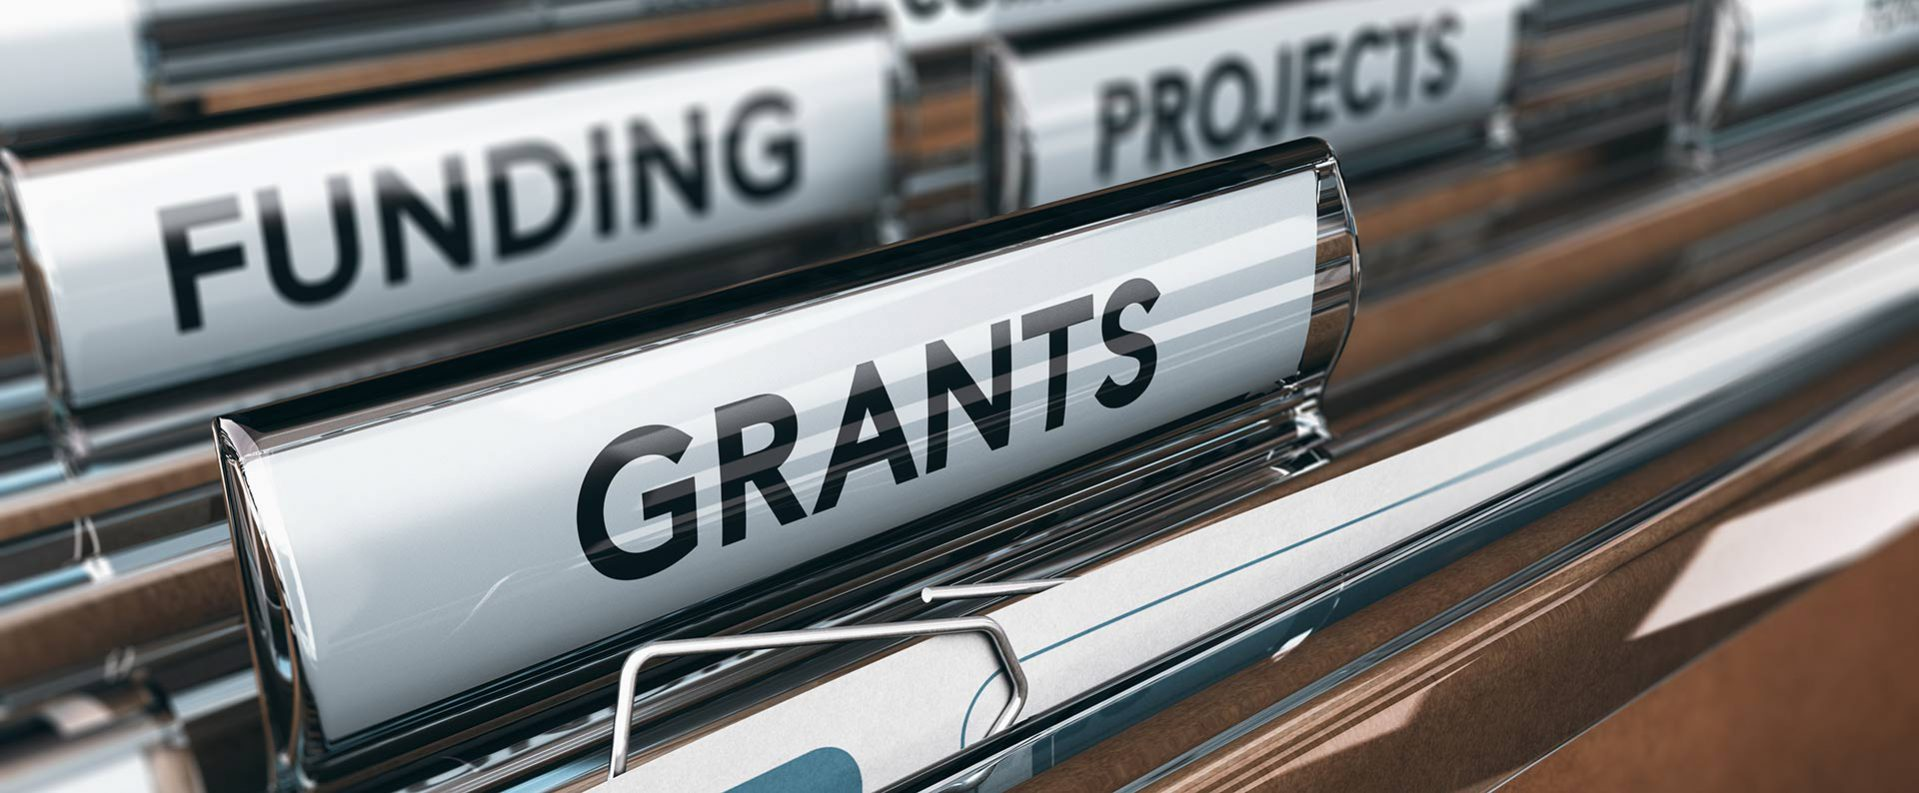 Florida Grants for Businesses with Learning Alliance